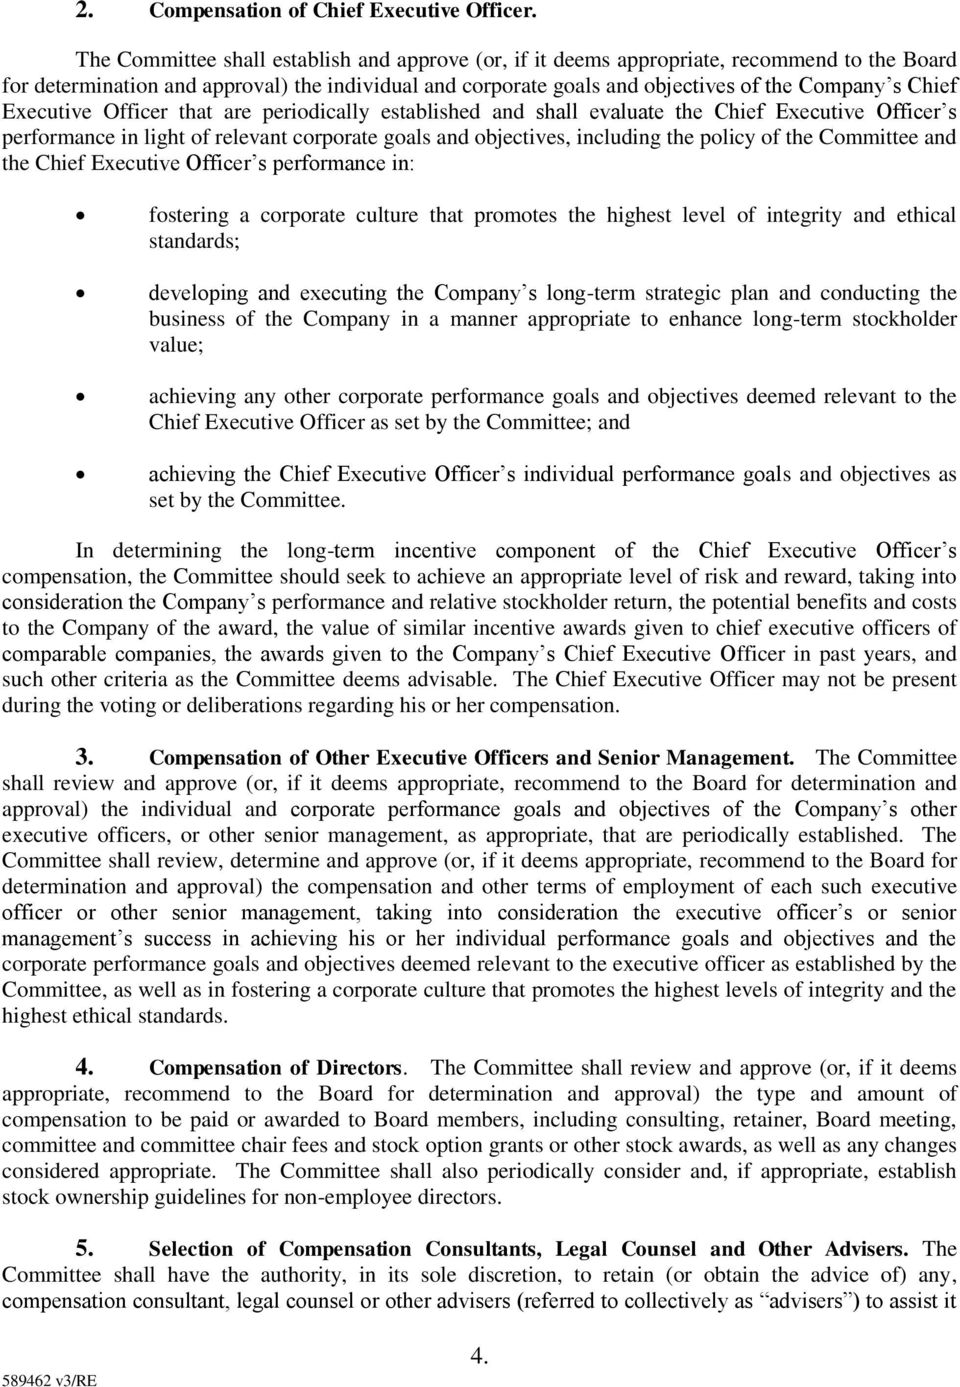 Executive Officer that are periodically established and shall evaluate the Chief Executive Officer s performance in light of relevant corporate goals and objectives, including the policy of the